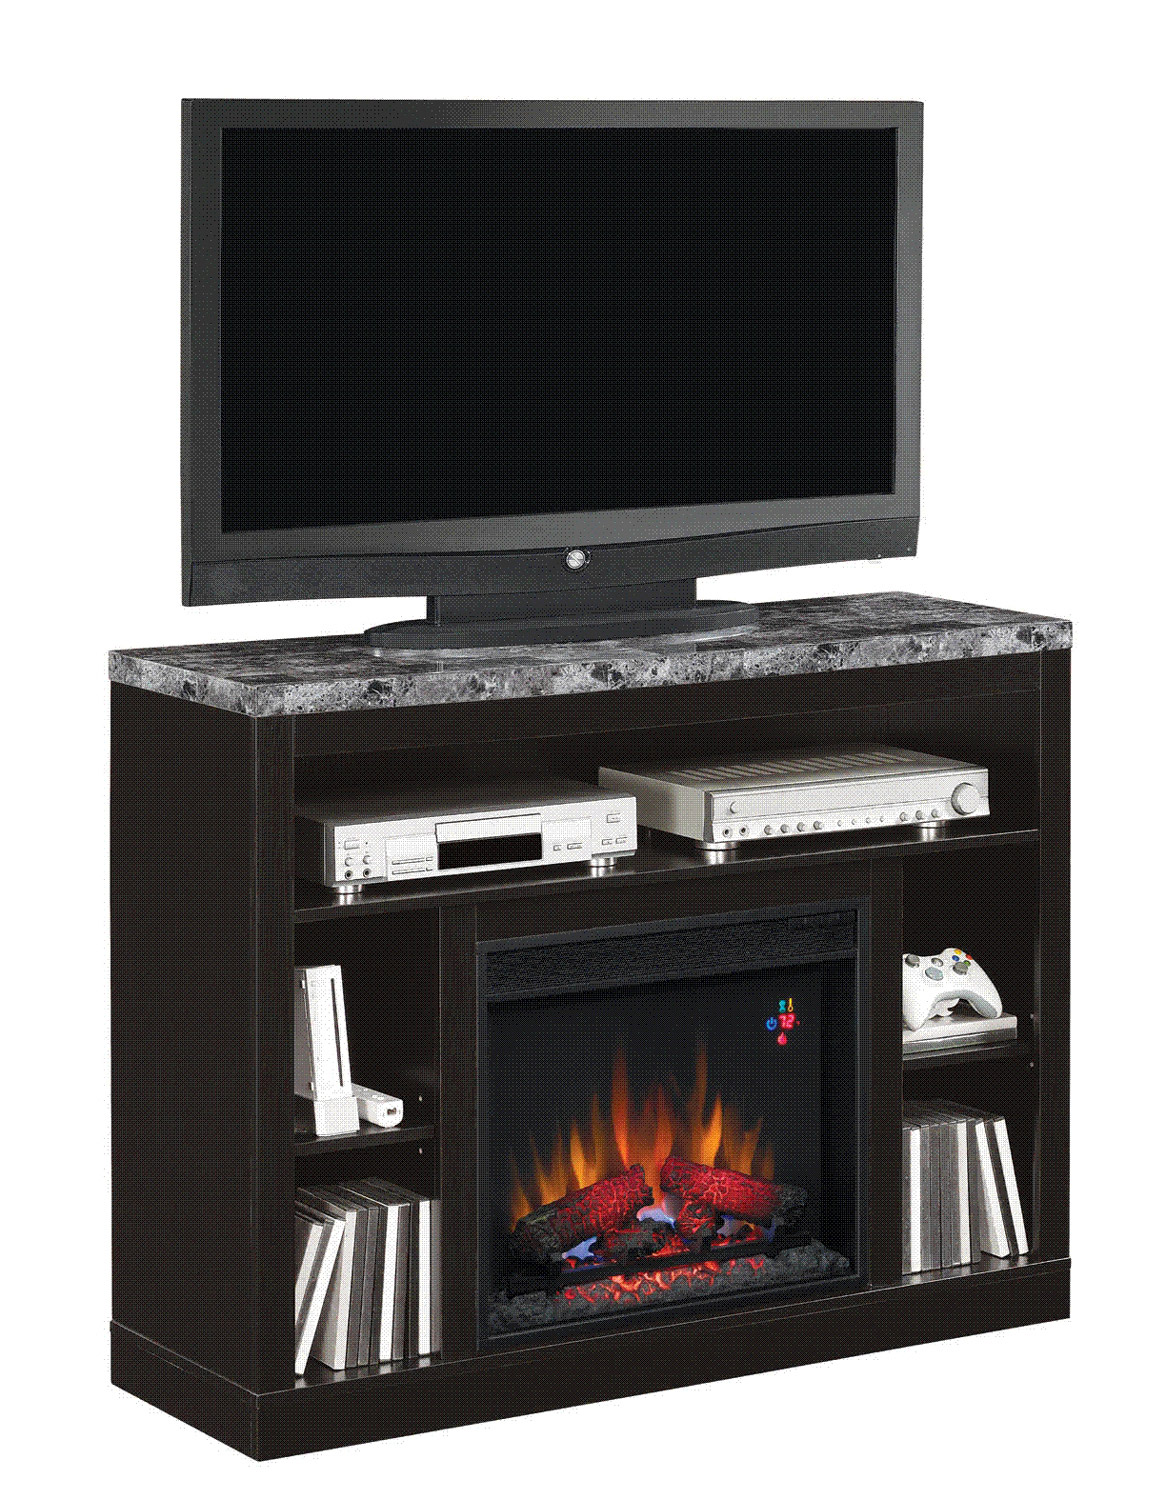 Classicflame Adams Electric Fireplace Twin Star Home Gallery